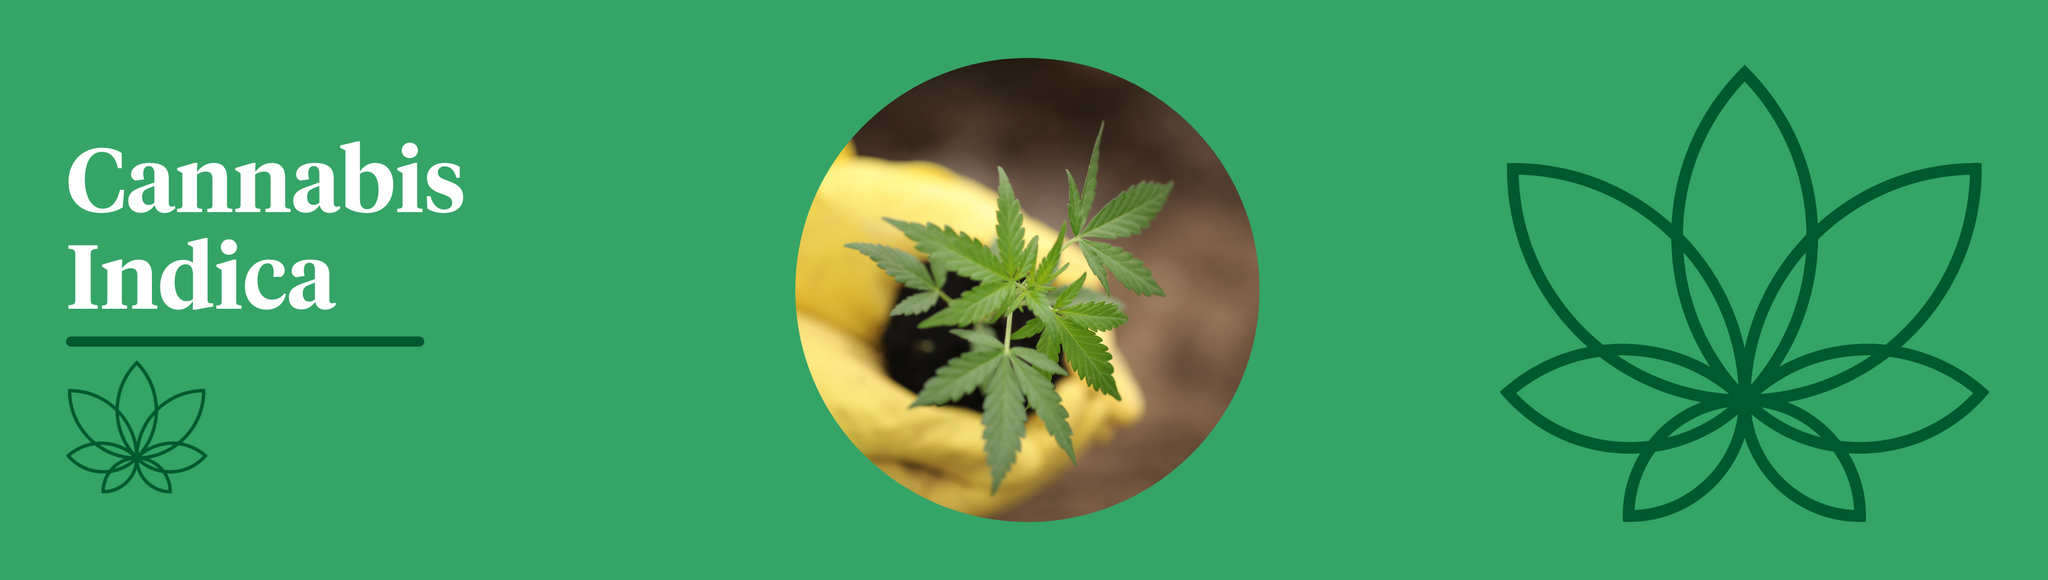 A green background with the Supreme CBD logo to the right with an image in the centre of a person wearing yellow gloves lifting a small Cannabis Indica plant out of the ground. Showing the difference between indica and sativa.